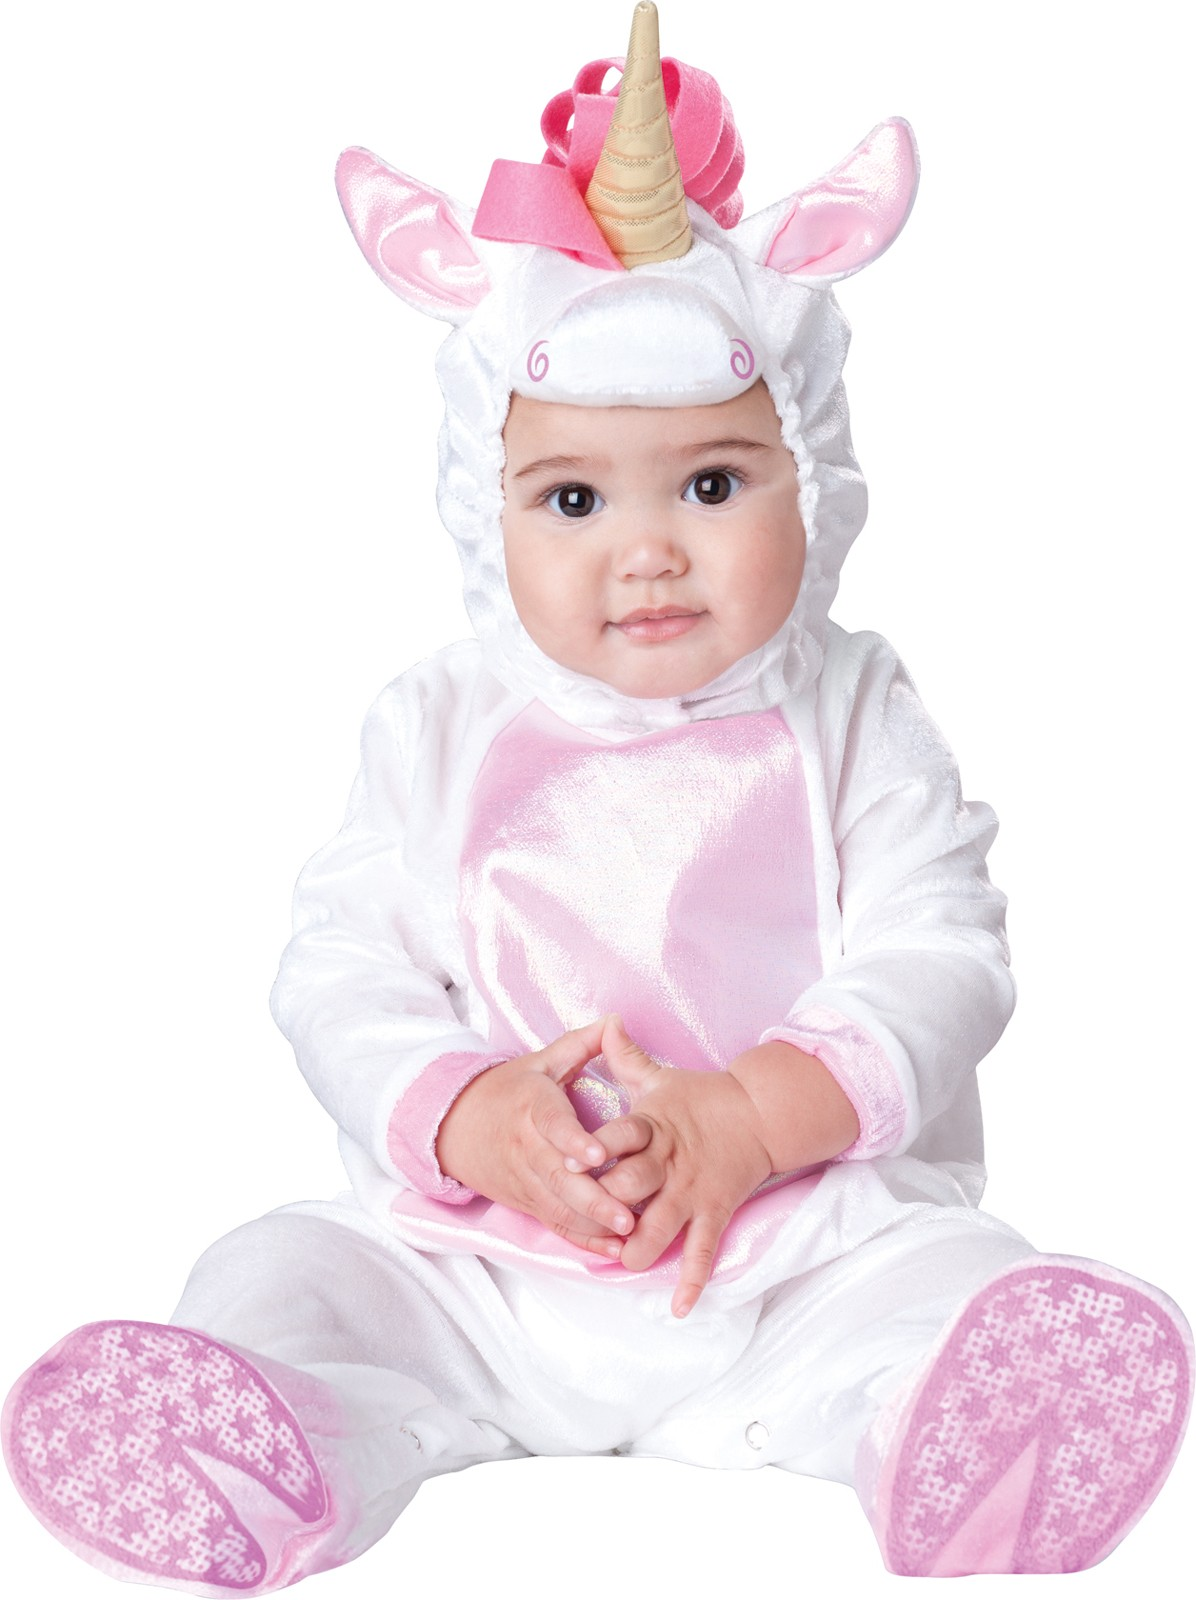 magical unicorn infant / toddler girl's costume | costumes.au